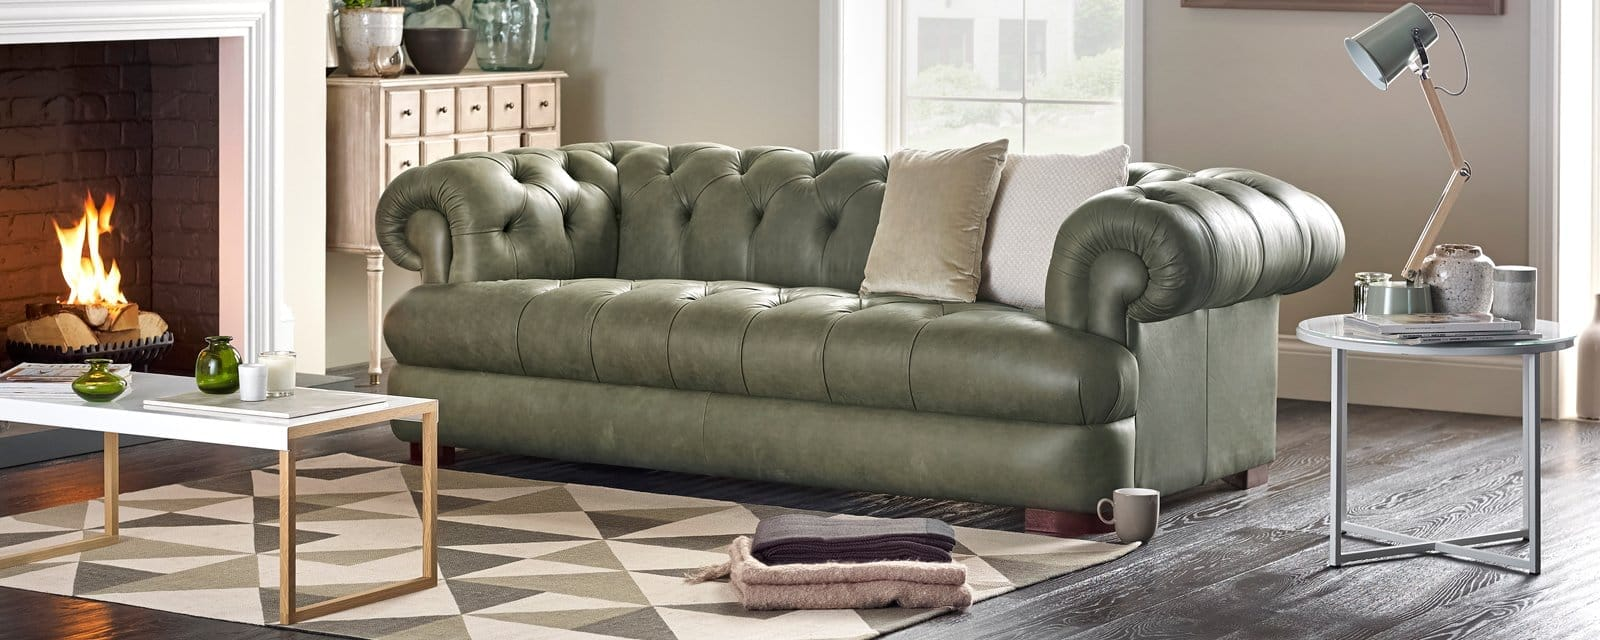 jazz 1 5 seater sofa from sofas by saxon uk. Black Bedroom Furniture Sets. Home Design Ideas